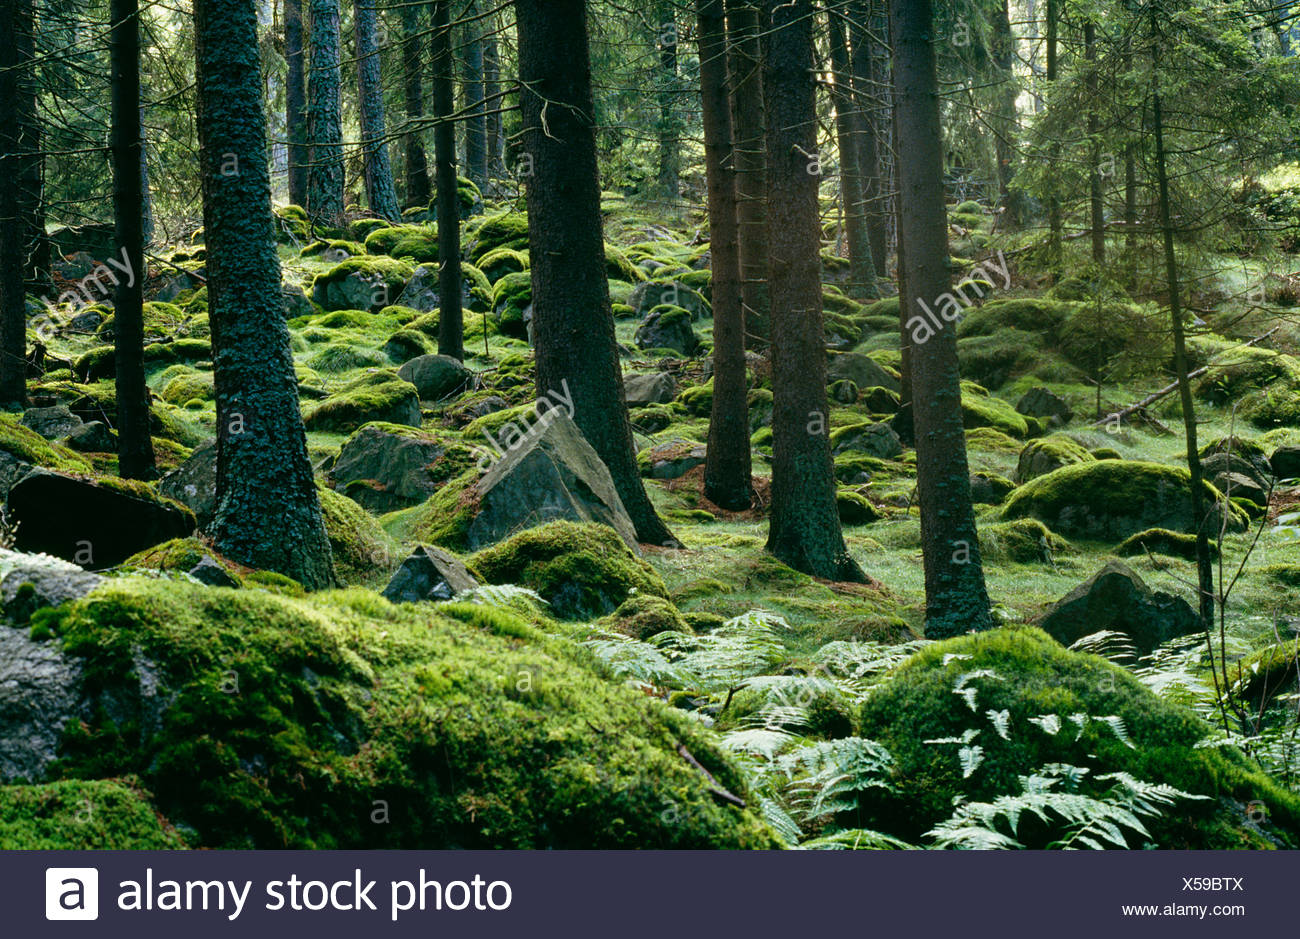 View of moss covered forest - Stock Image